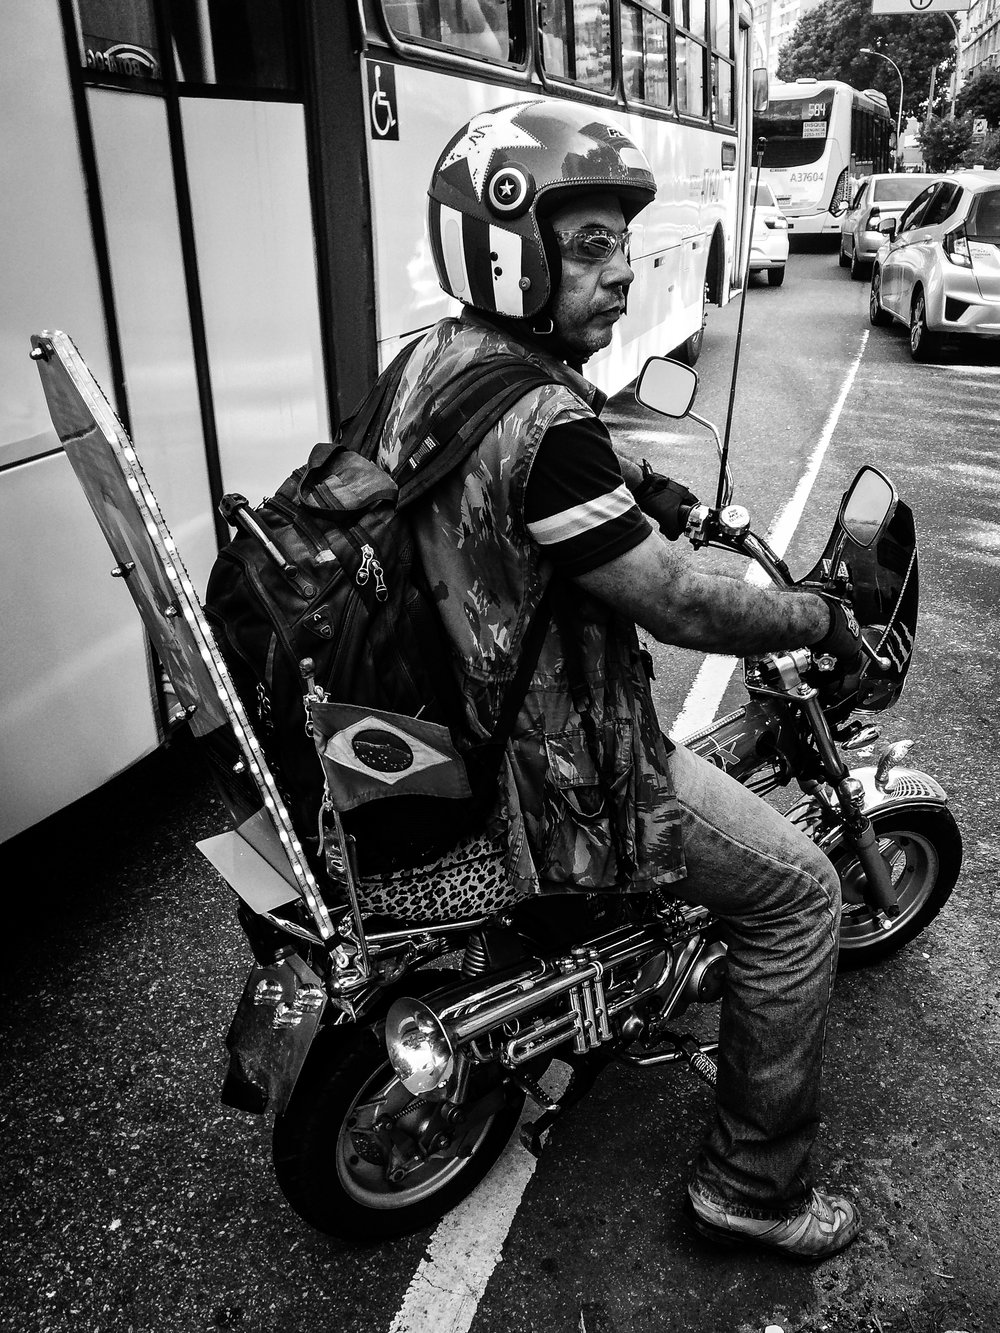 / Born to be wild